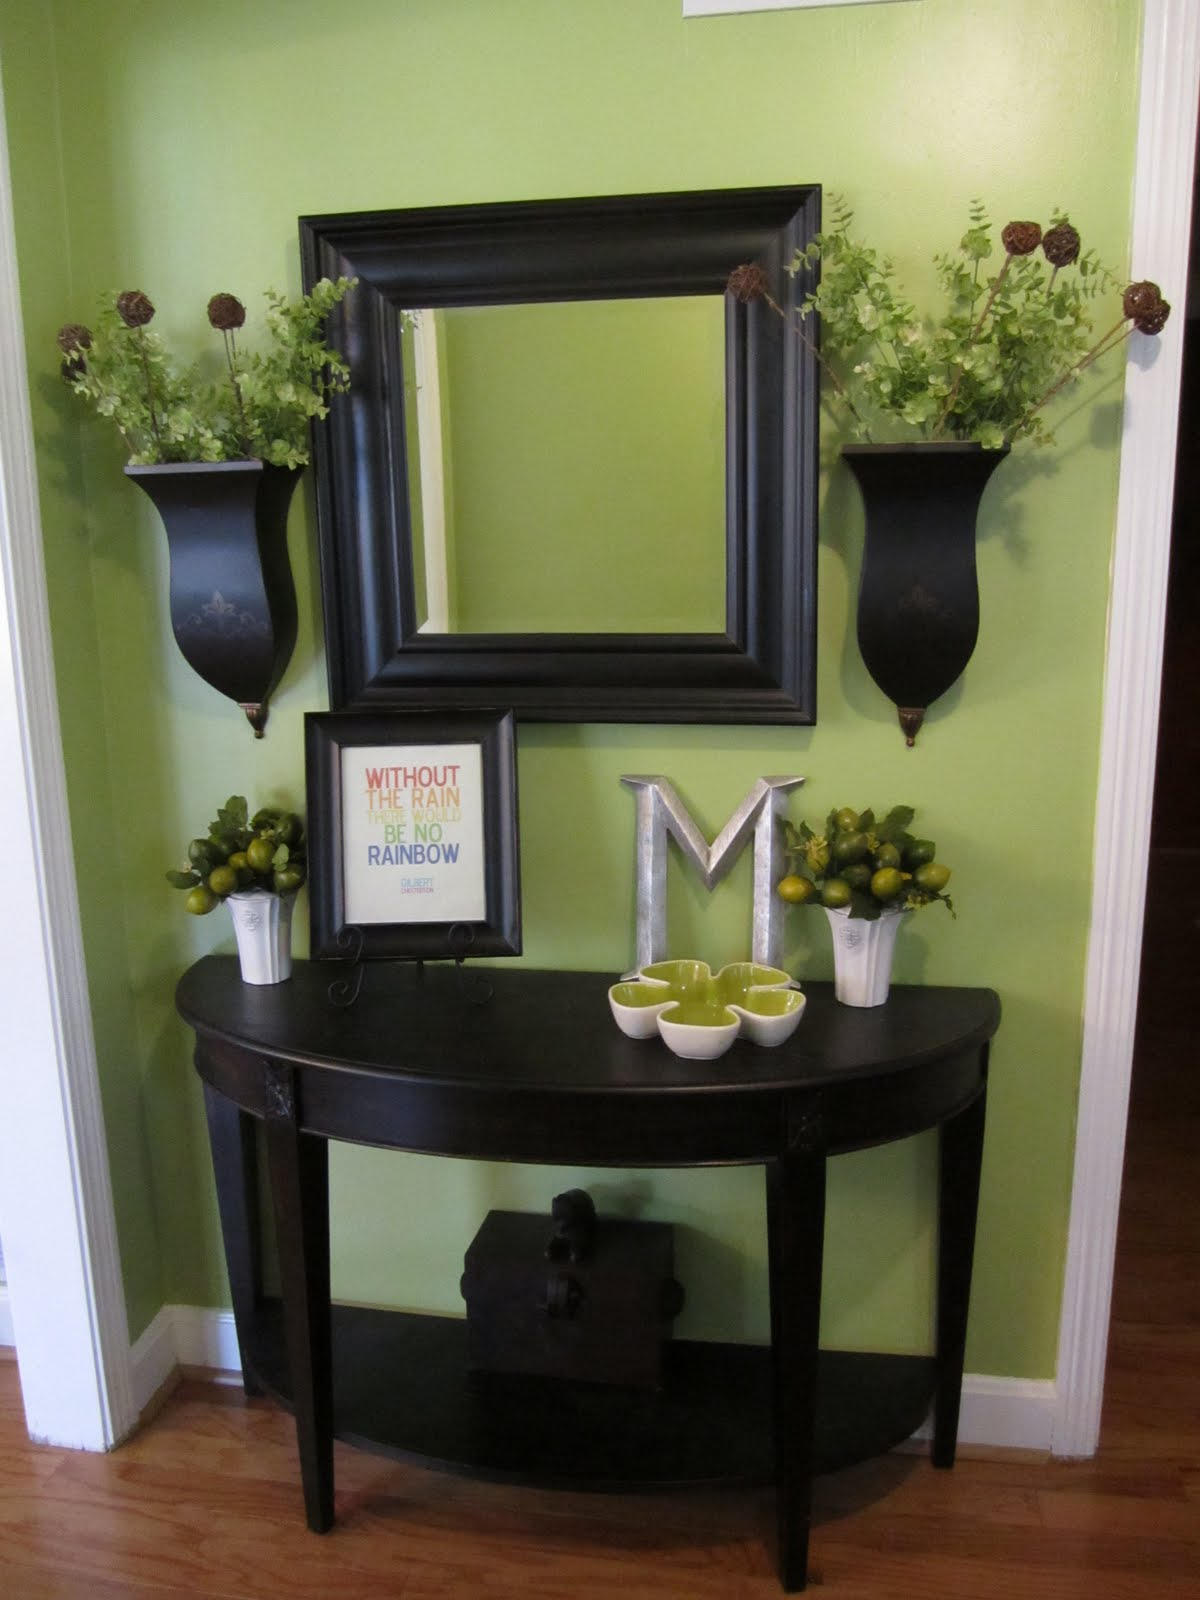 Foyer Furniture And Decor : Entryway ideas for school interior home design